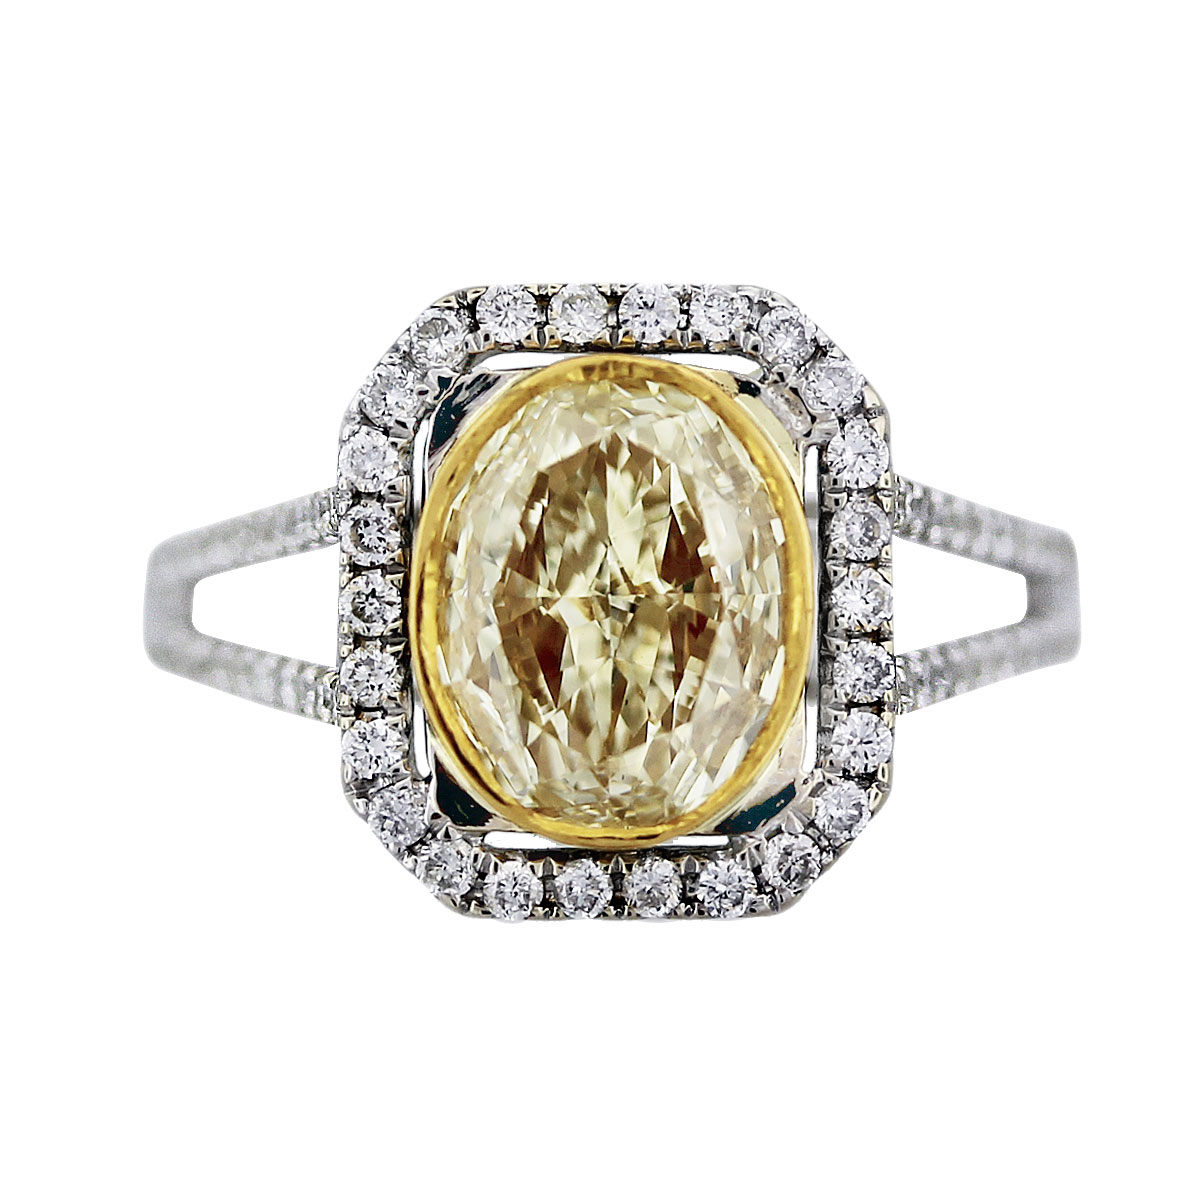 2 ct oval cut fancy yellow diamond engagement ring 18k two tone gold. Black Bedroom Furniture Sets. Home Design Ideas